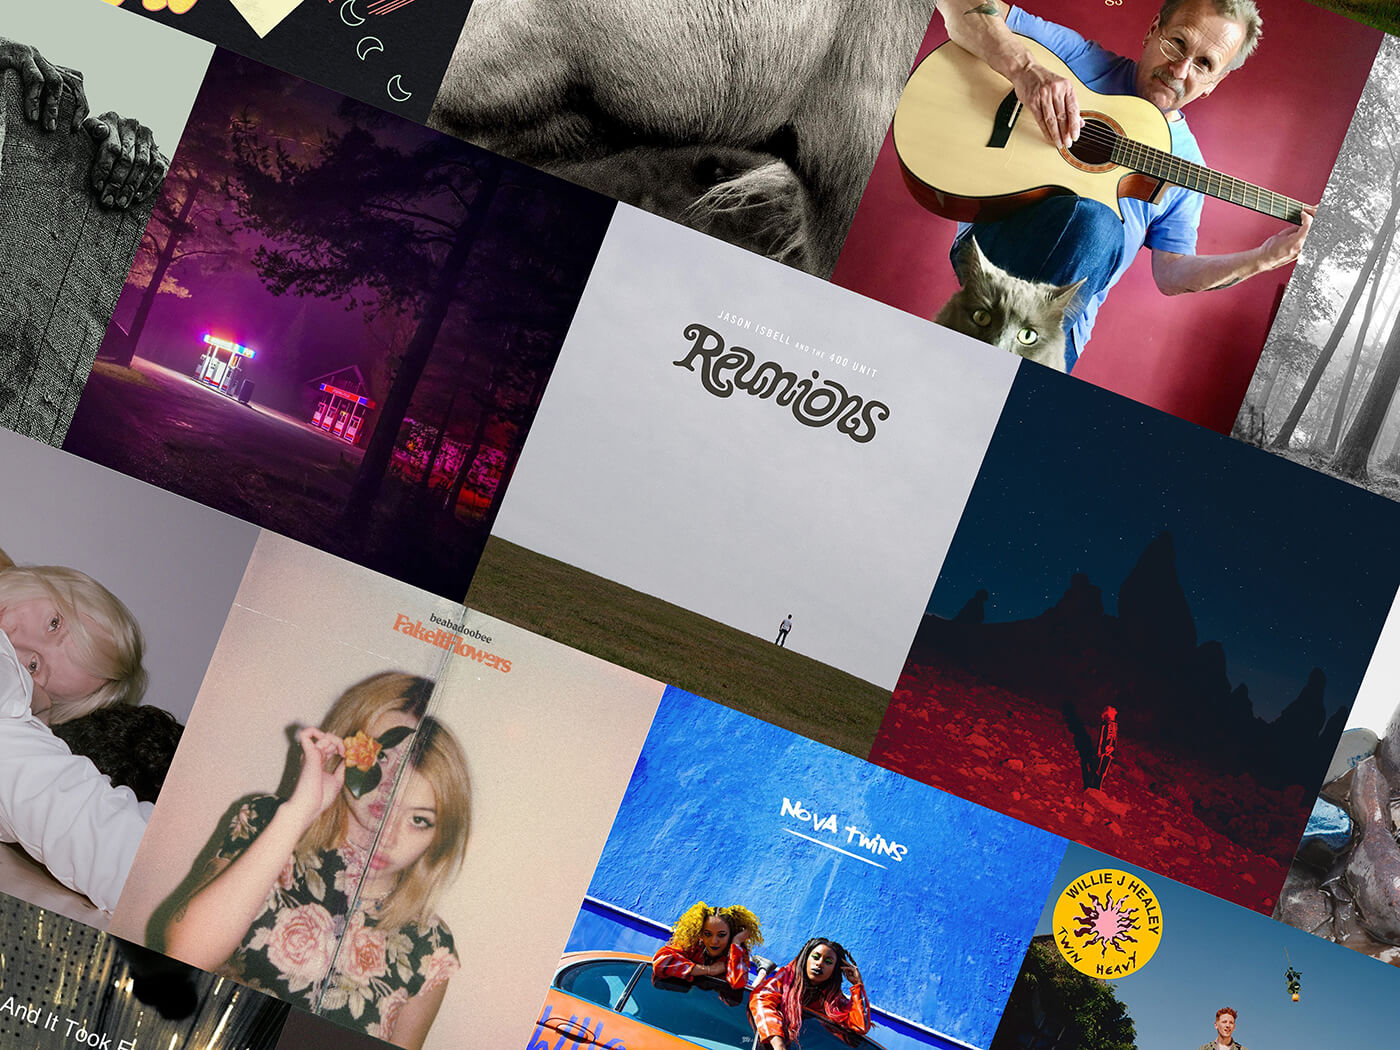 The Best Guitar Albums Of 2020 | Guitar.com